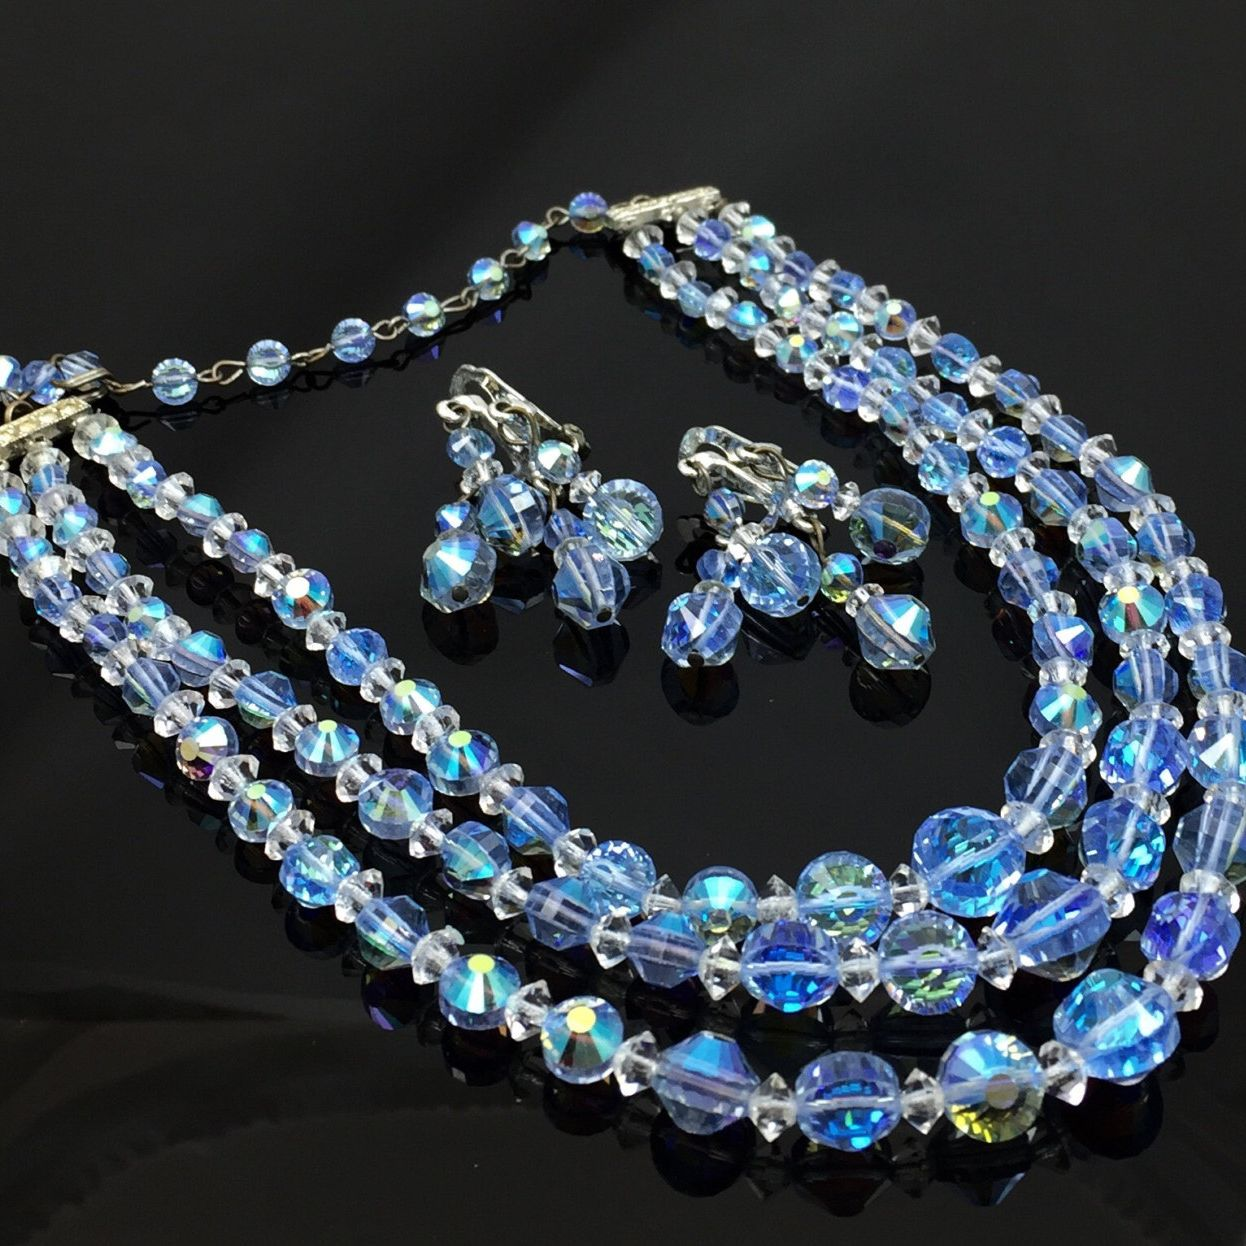 Triple Strand Blue Ab Crystal Bead Necklace Earrings Set